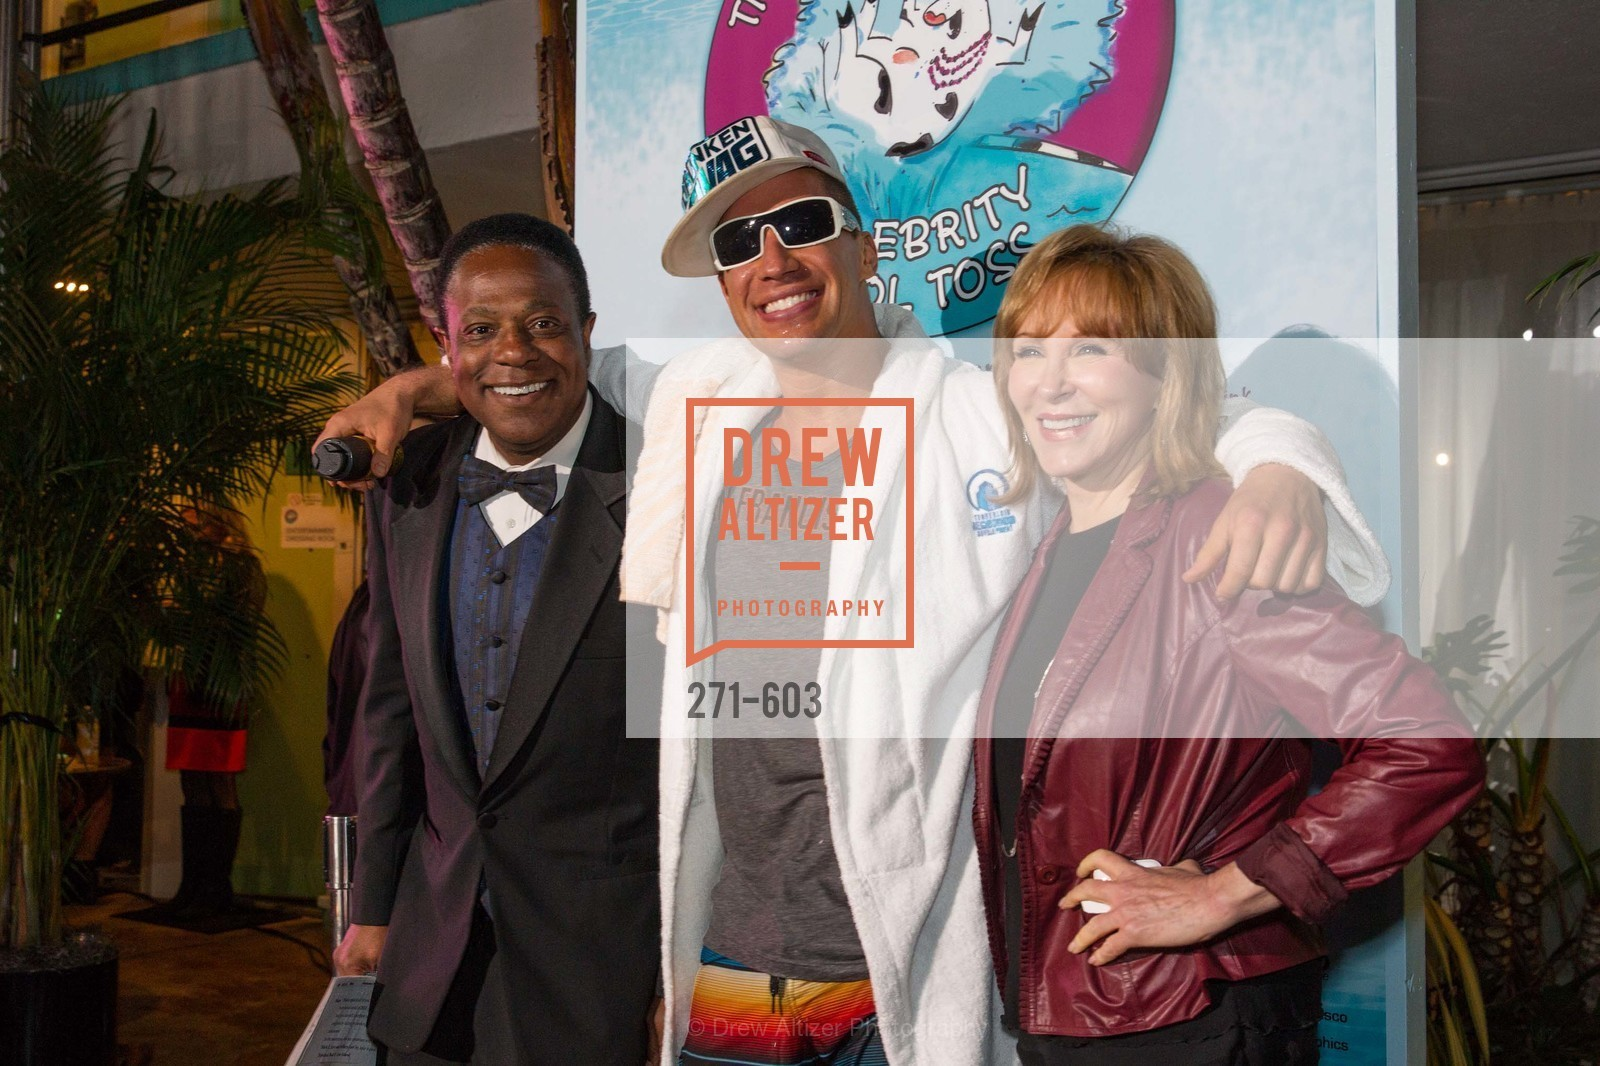 Brian Copeland, AJ Kirsch, Cheryl Jennings, 22nd Annual TNDC CELEBRITY POOL TOSS, US, October 8th, 2014,Drew Altizer, Drew Altizer Photography, full-service agency, private events, San Francisco photographer, photographer california